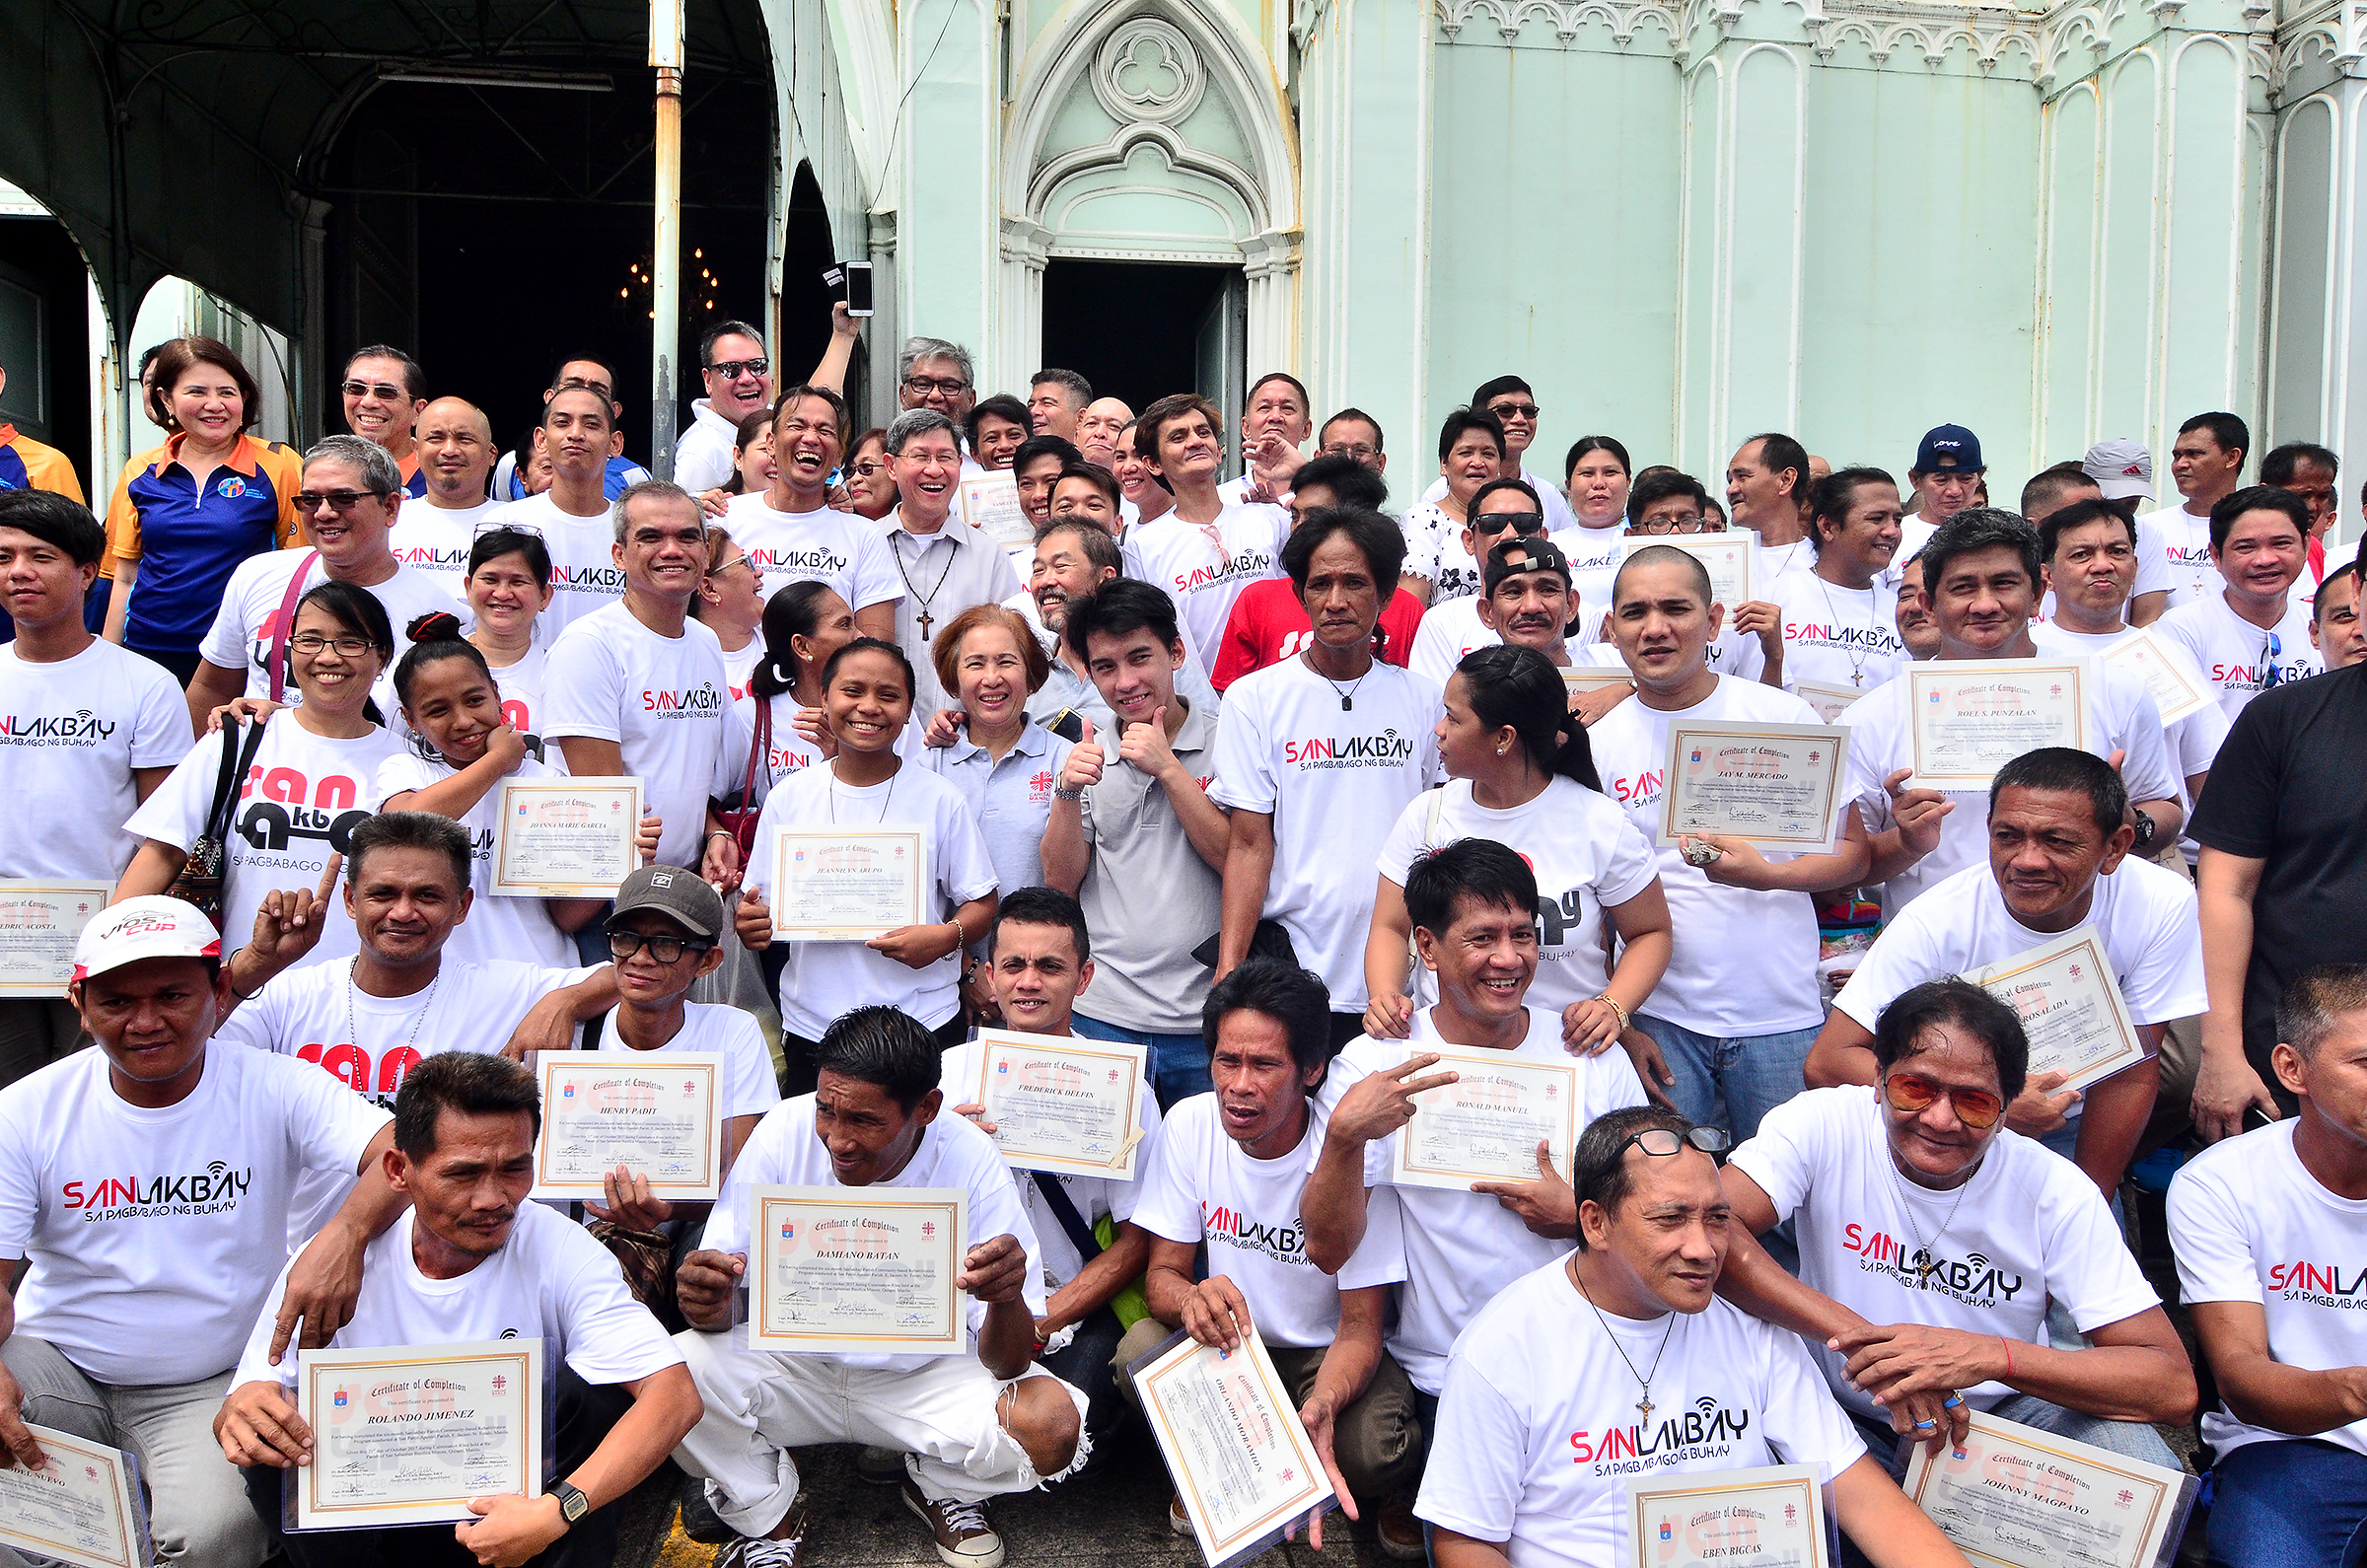 ALL SMILES. More than a hundred former drug dependents graduate from the Catholic Church's drug rehabilitation program. Photo by Maria Tan/Rappler